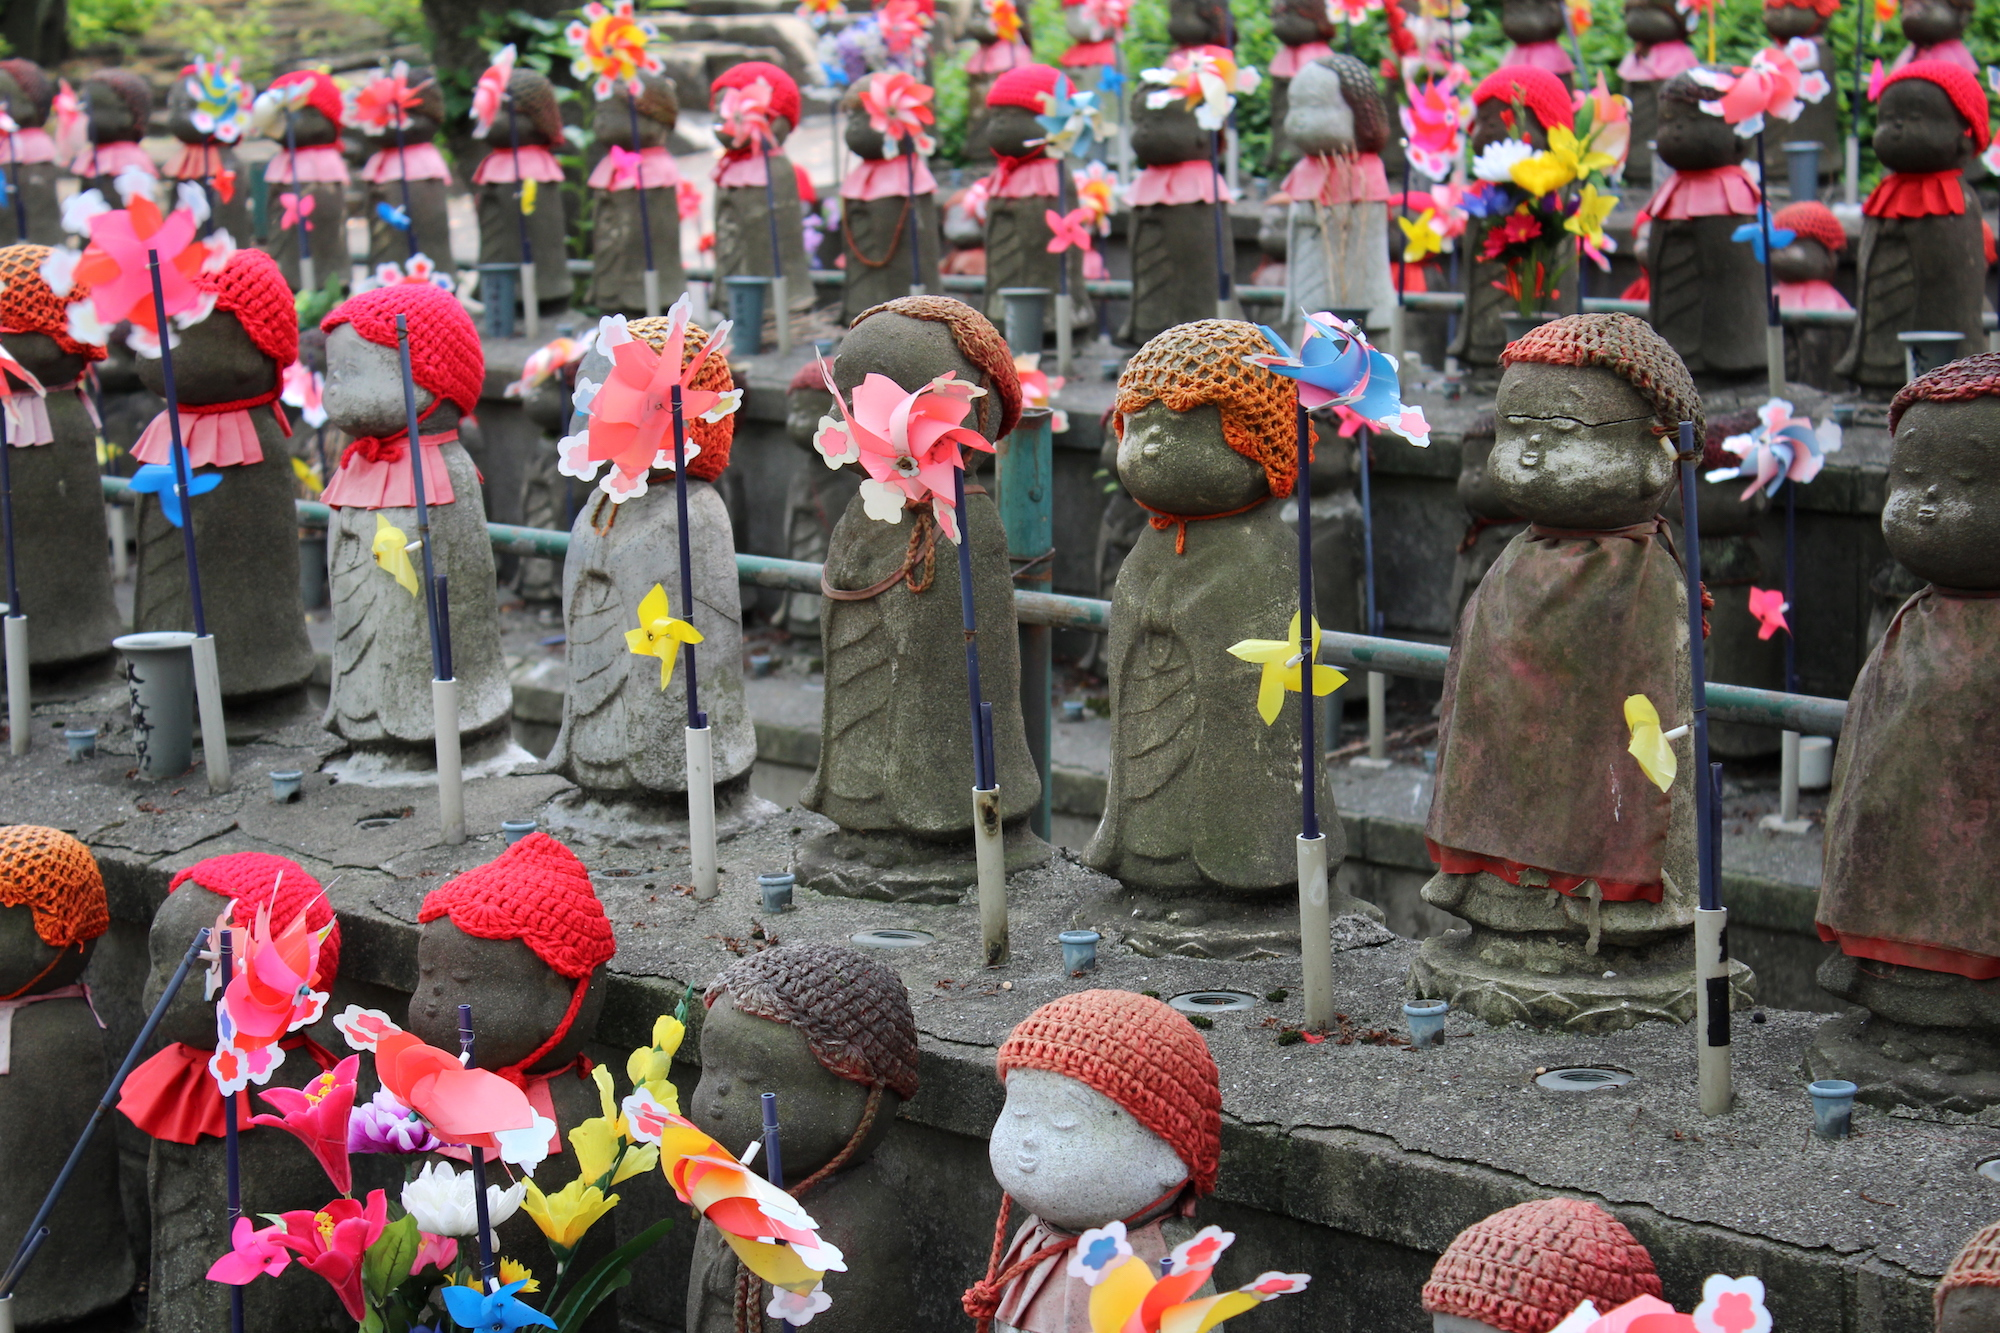 Rows of small statues with handmade bonnets